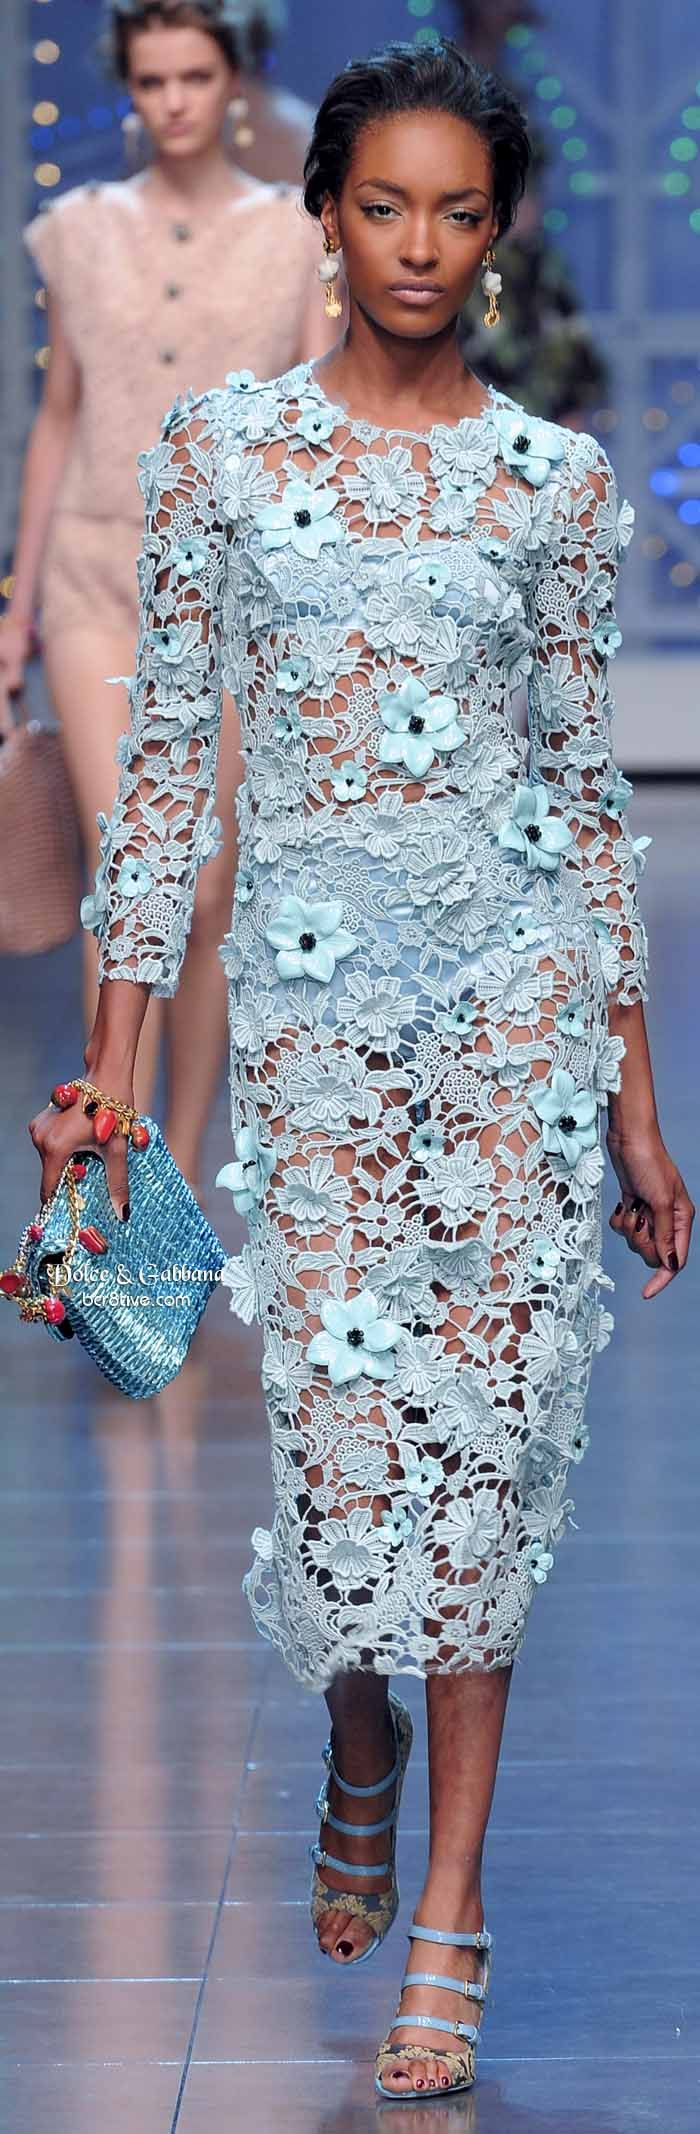 Dolce & Gabbana 2014  everything somewhat modest or modest is only made by the couture designers. why?